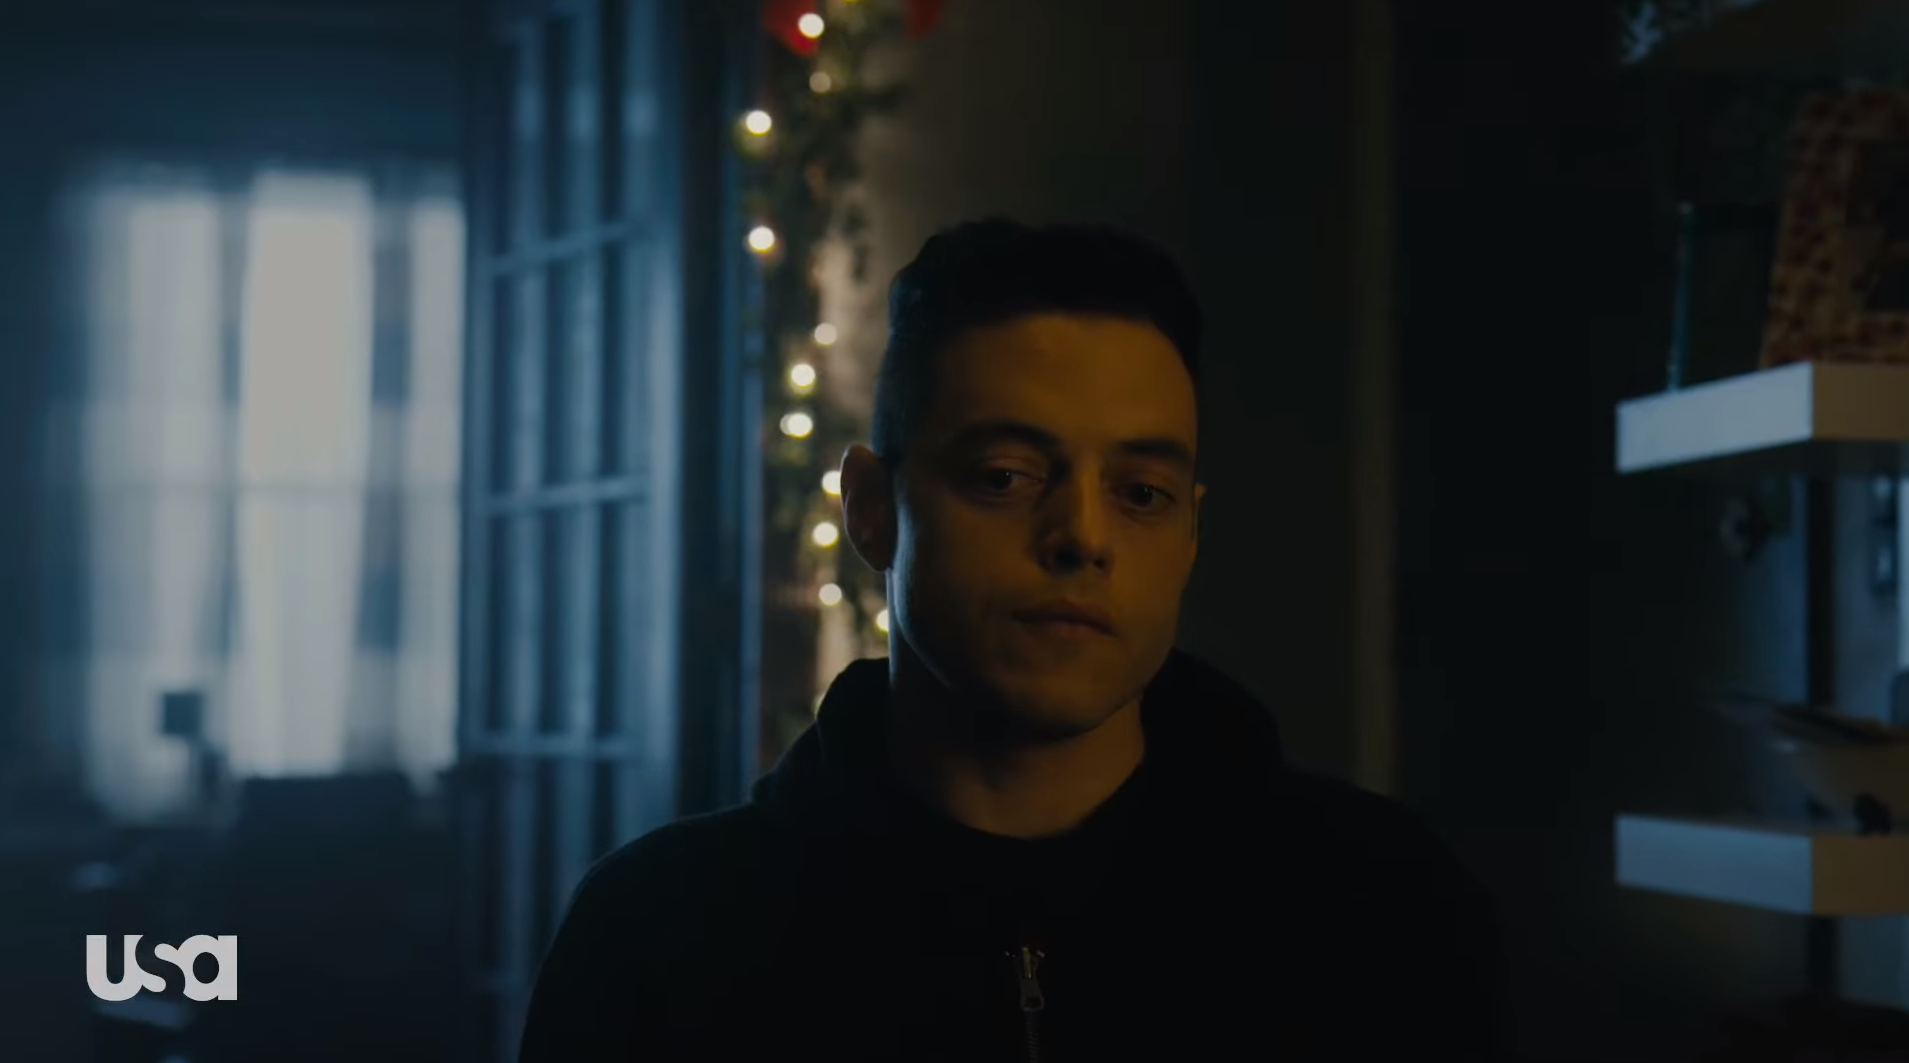 Westlake Legal Group mr-robot-season-4-teaser 'Mr. Robot' teases fourth and final season in new trailer Jeremy Nifras fox-news/entertainment/tv fox news fnc/entertainment fnc b96f839f-5271-592a-9cc7-8c0c5bfe0d85 article